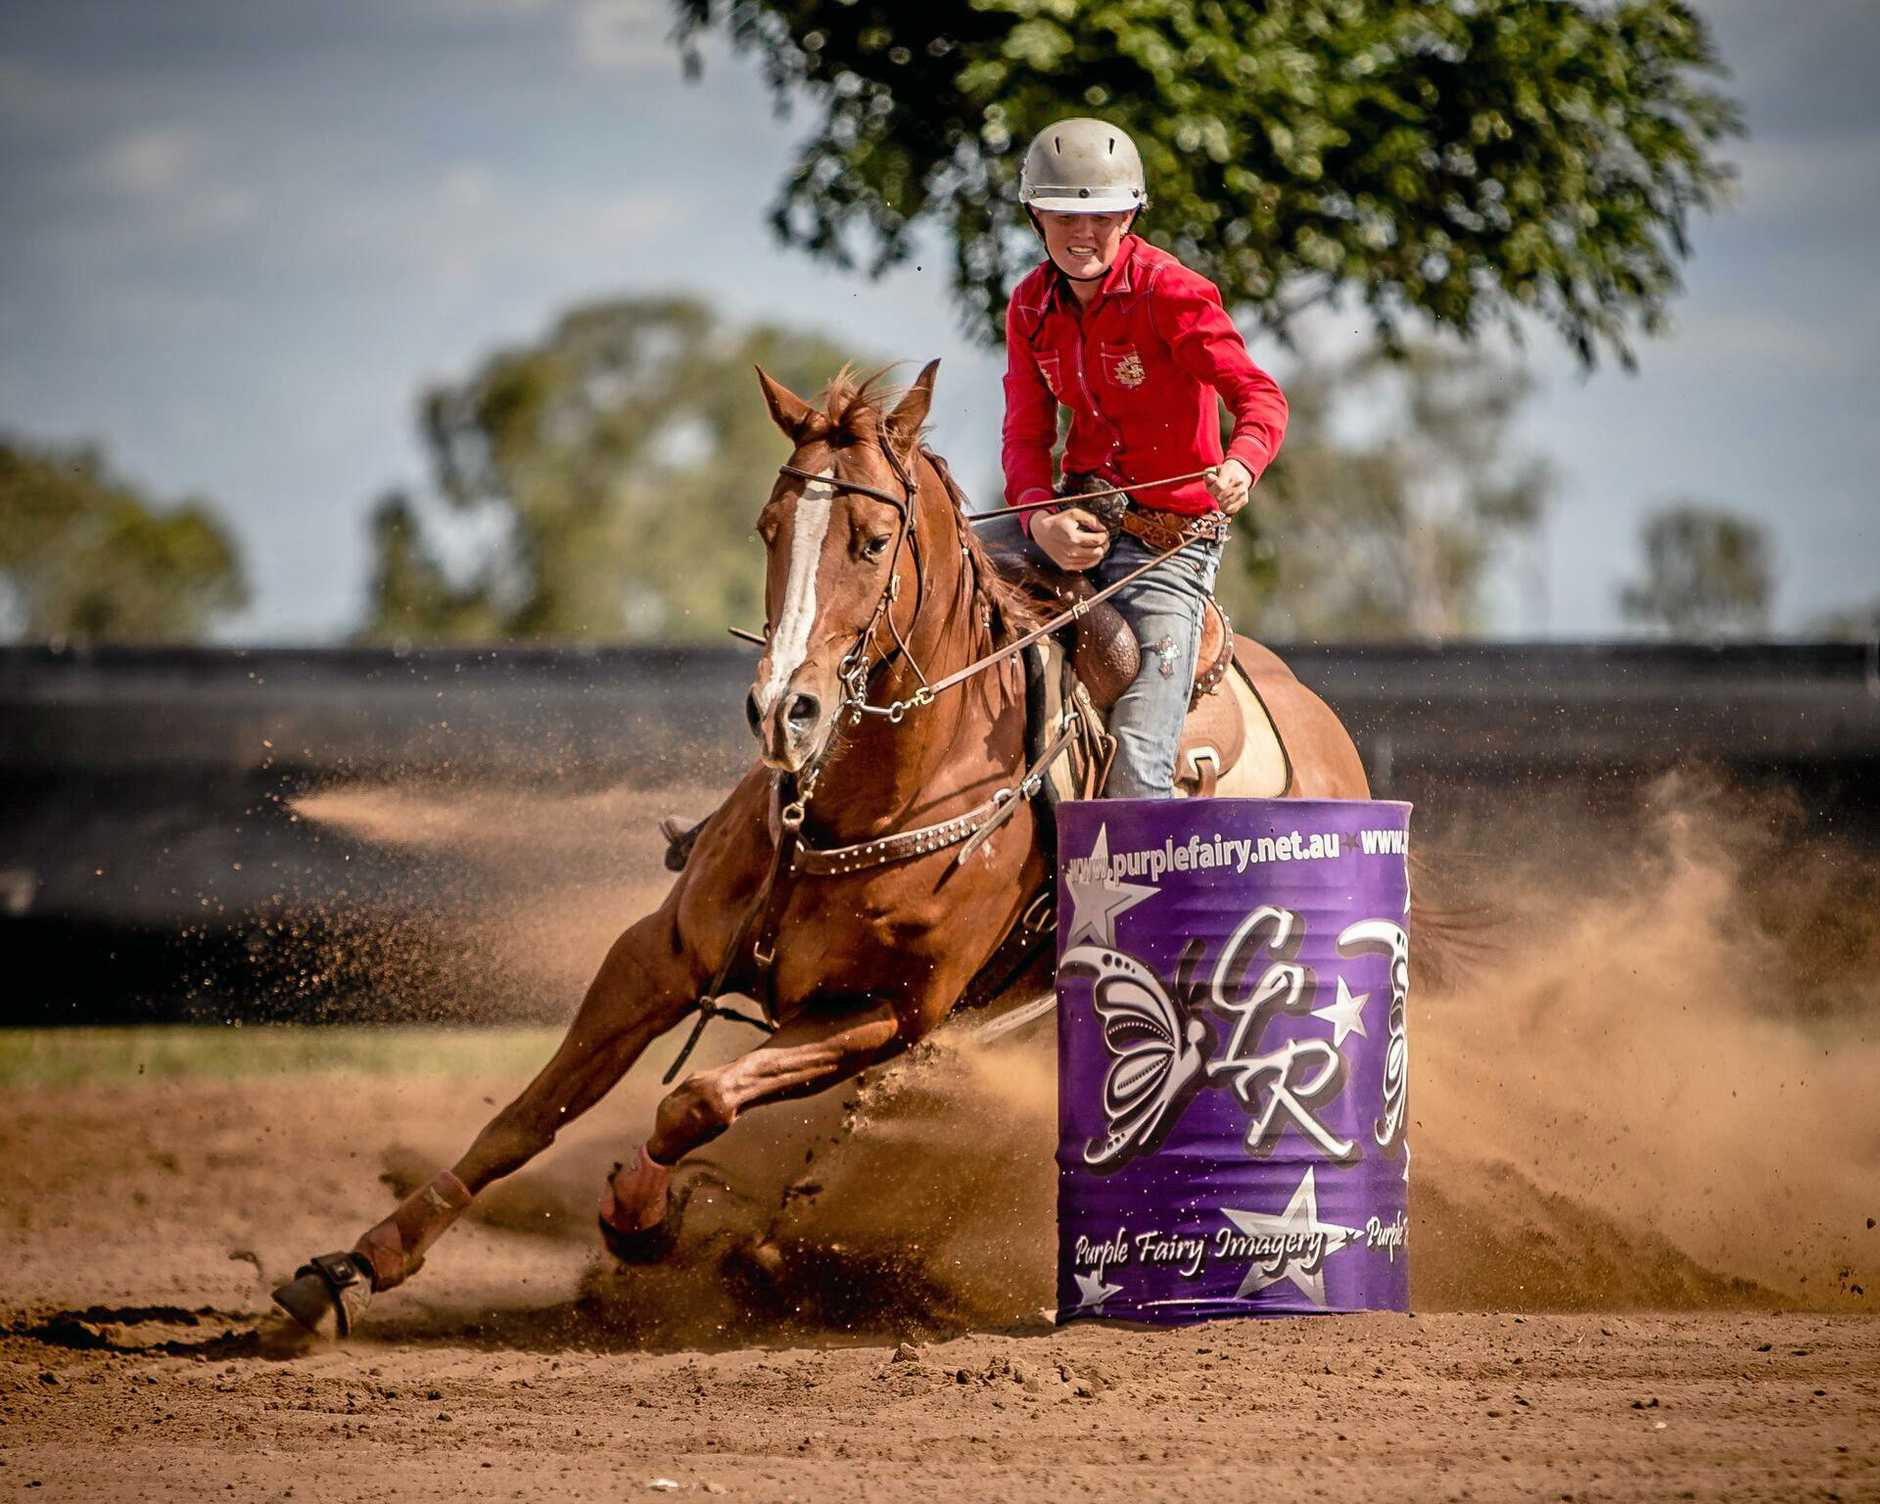 TOP FORM: Ellysa Kenny is a barrel racing and breakaway roping competitor who was this year named all round cowgirl in the APRA national finals.